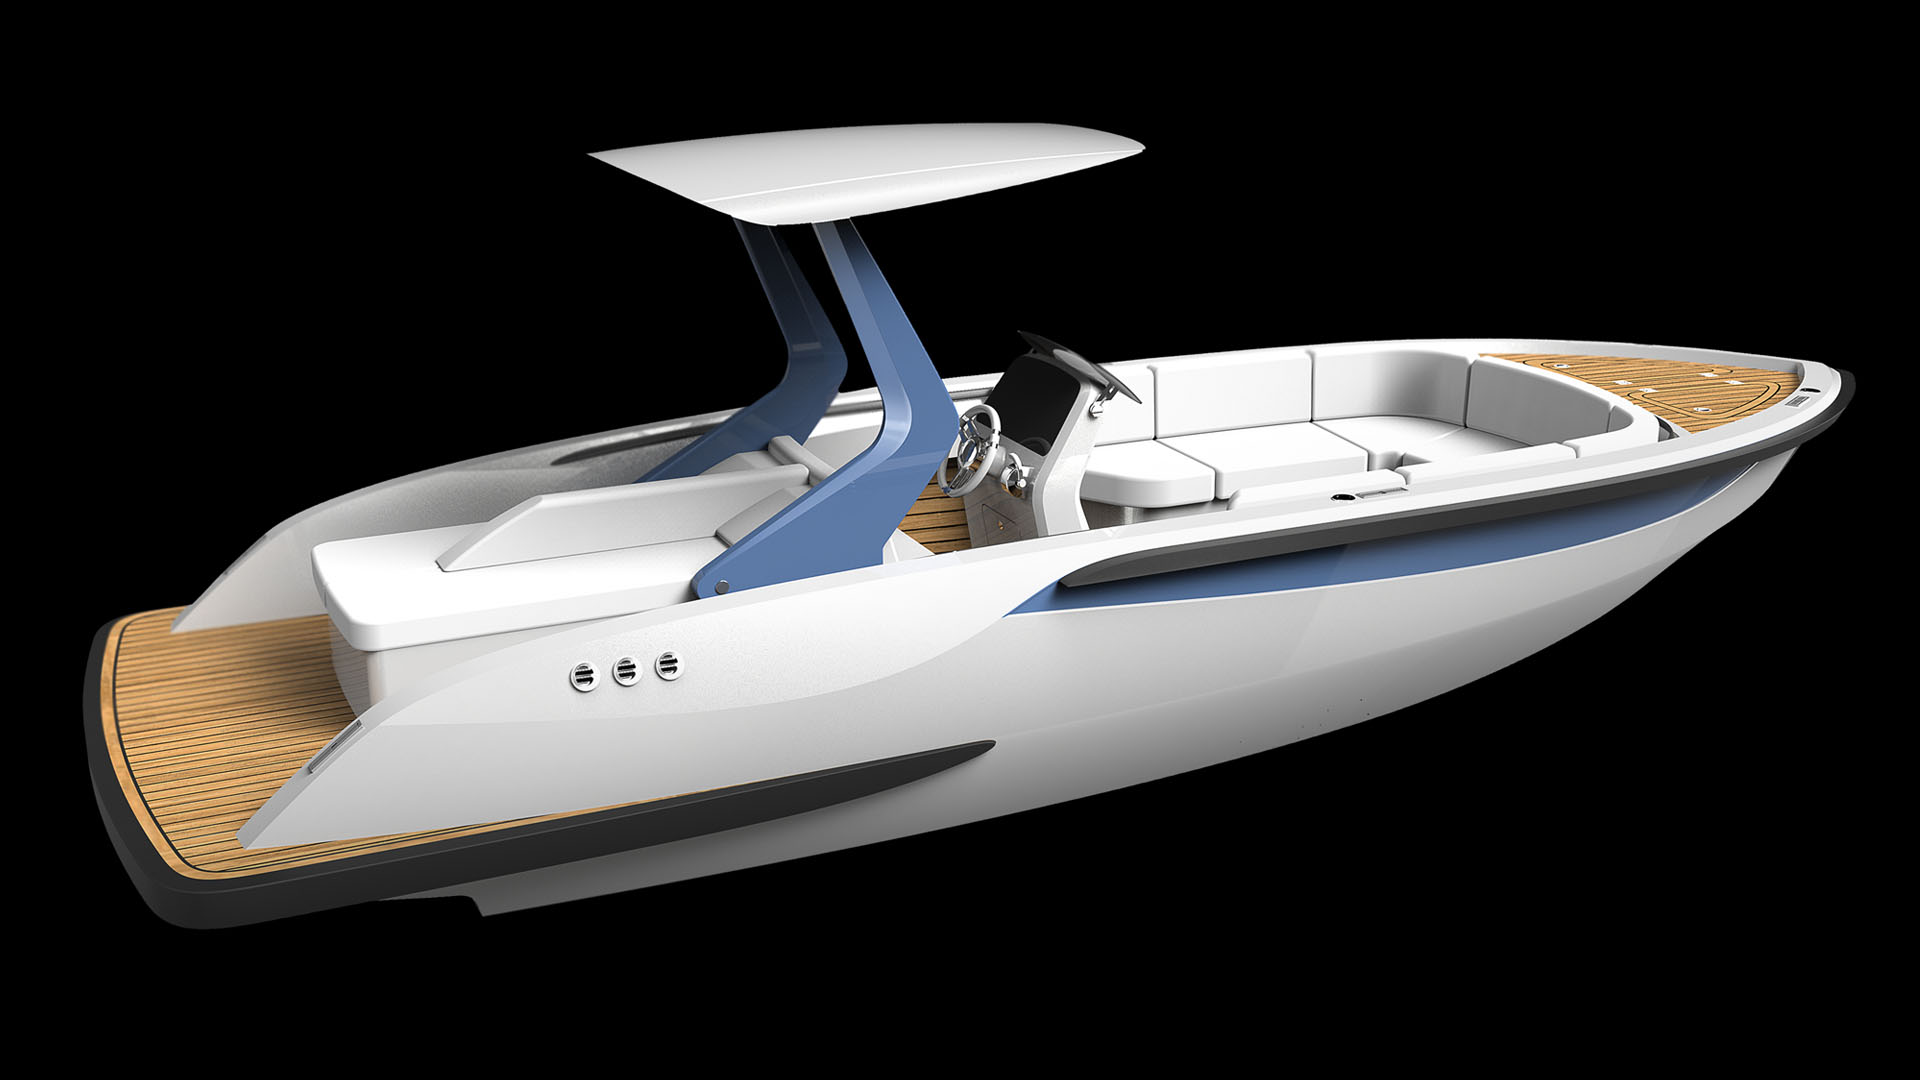 Superyacht tenders for superyachts and composite boats and luxury yachts design by Hamid Bekradi